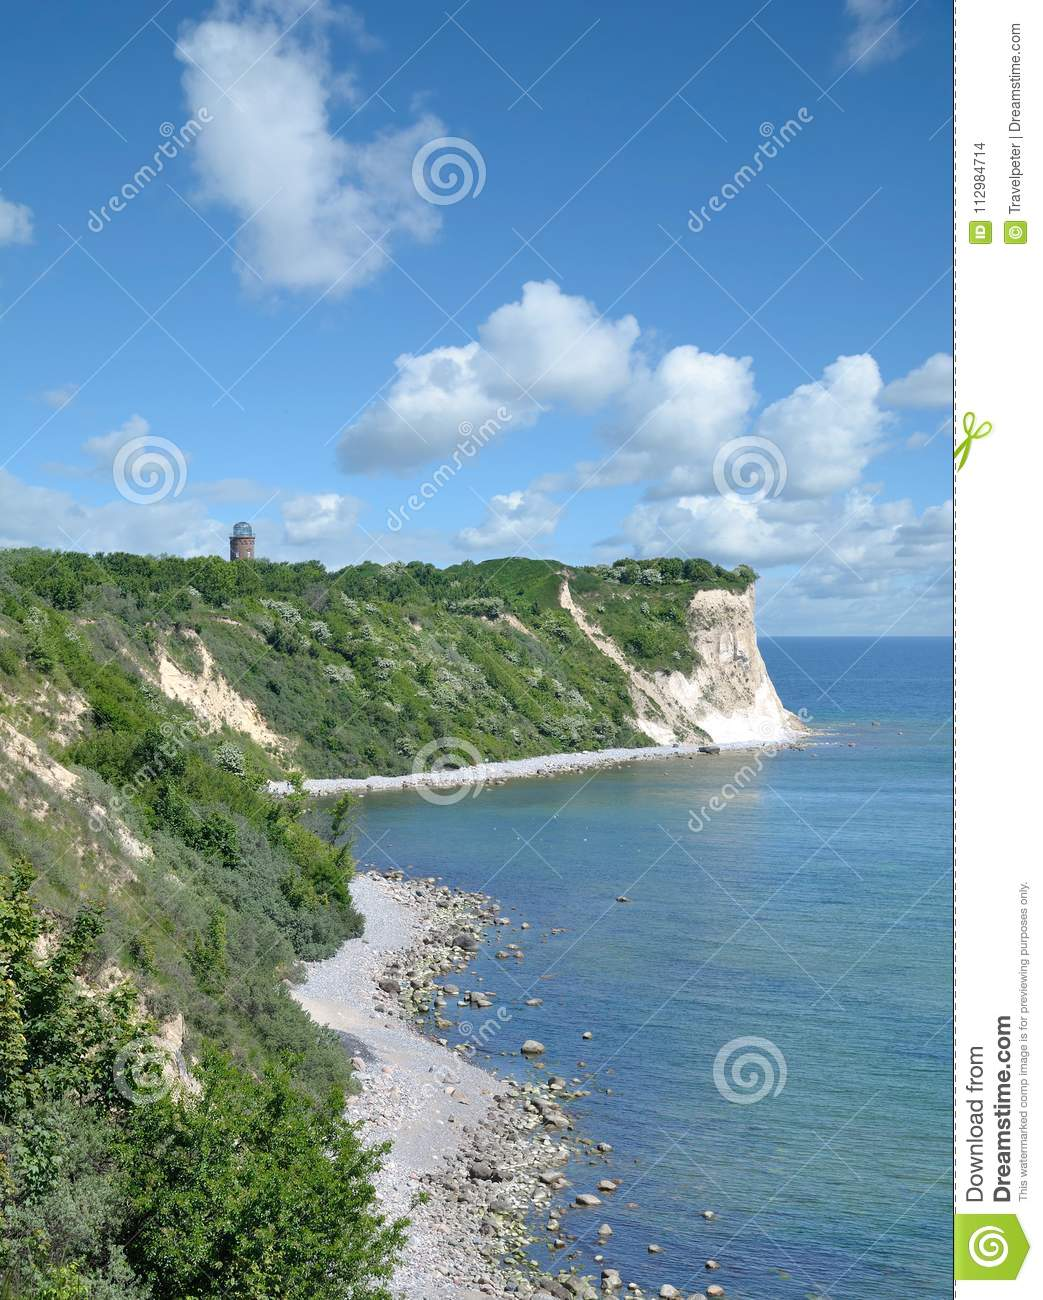 Coastline at Kap Arkona,Ruegen,baltic Sea,Germany